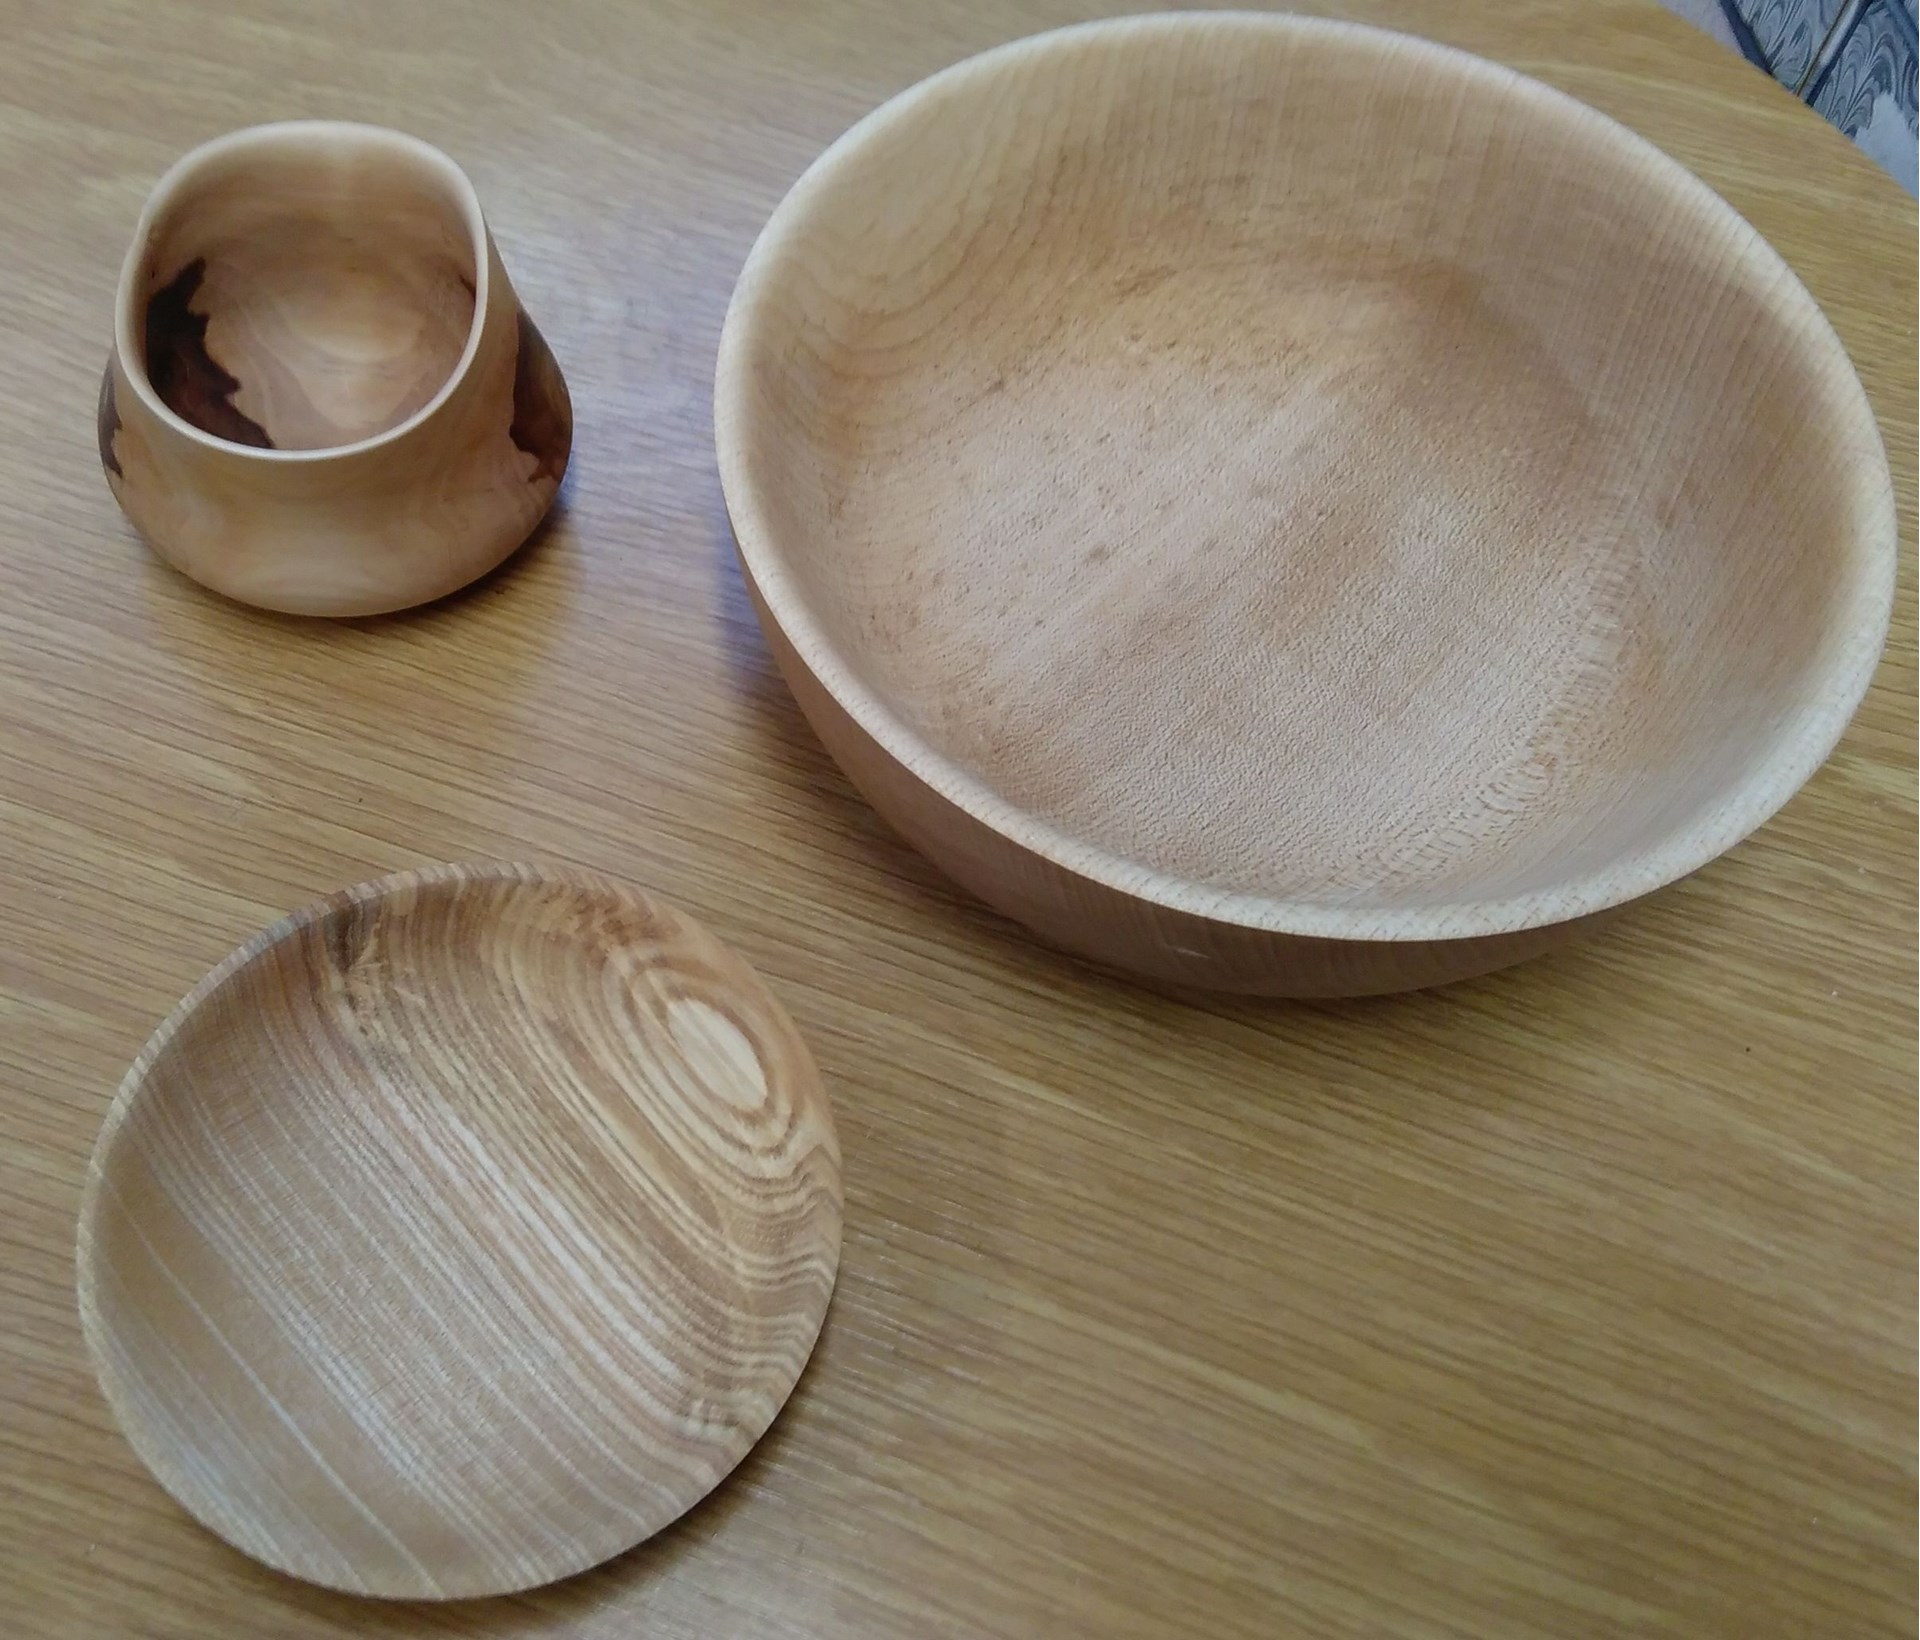 Members are building up experience in turning. The bowl and plate was made by Mike on a course run by Neil (workerinwood.co.uk). The distorted bowl wis made of green applewood and has taken up the shape as it dries out. Made by Neil.